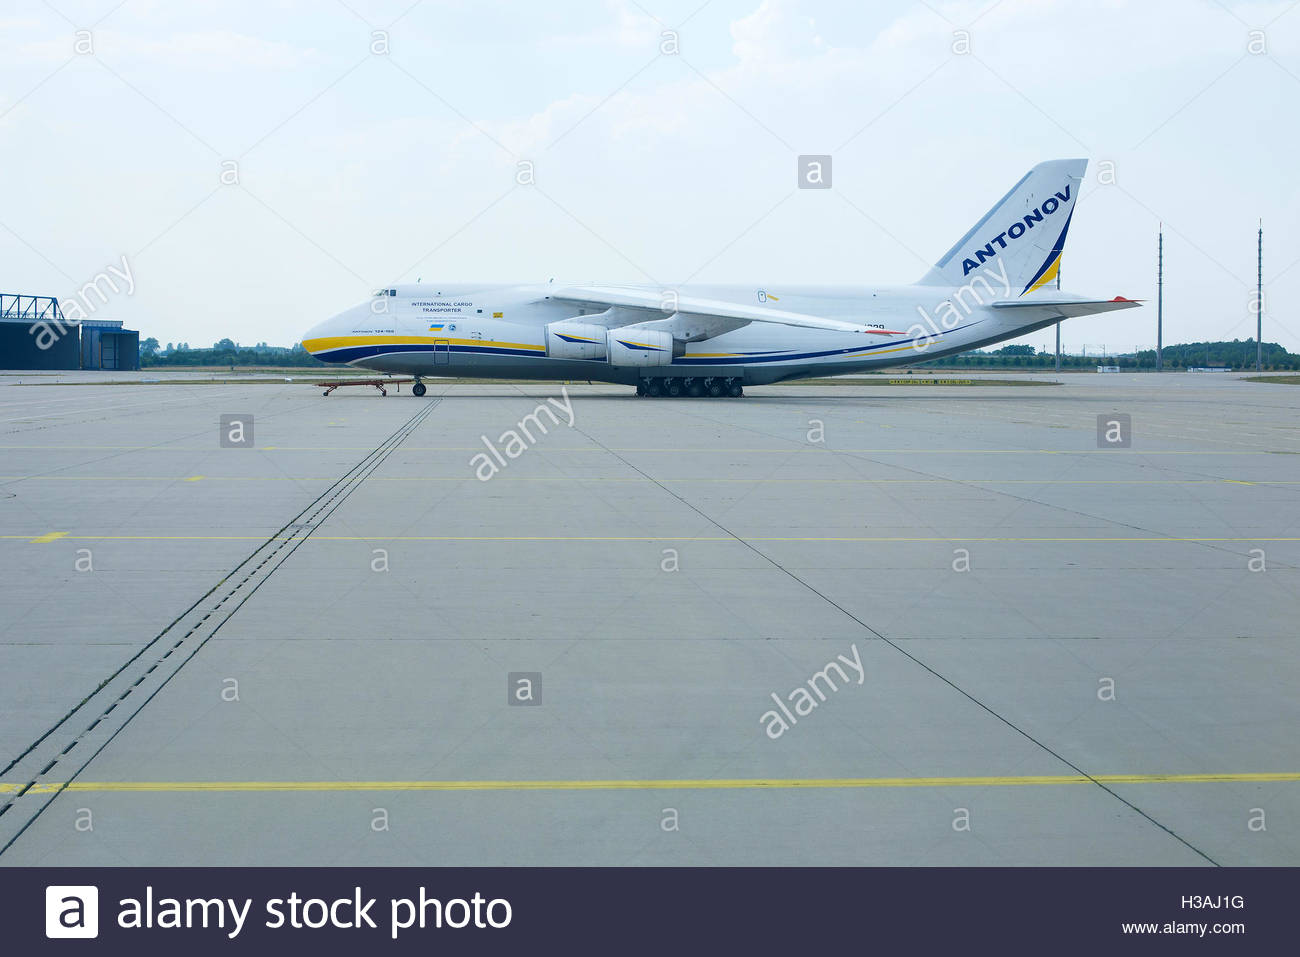 Antonov 124-100 at the Leipzig Airport. - Stock Image